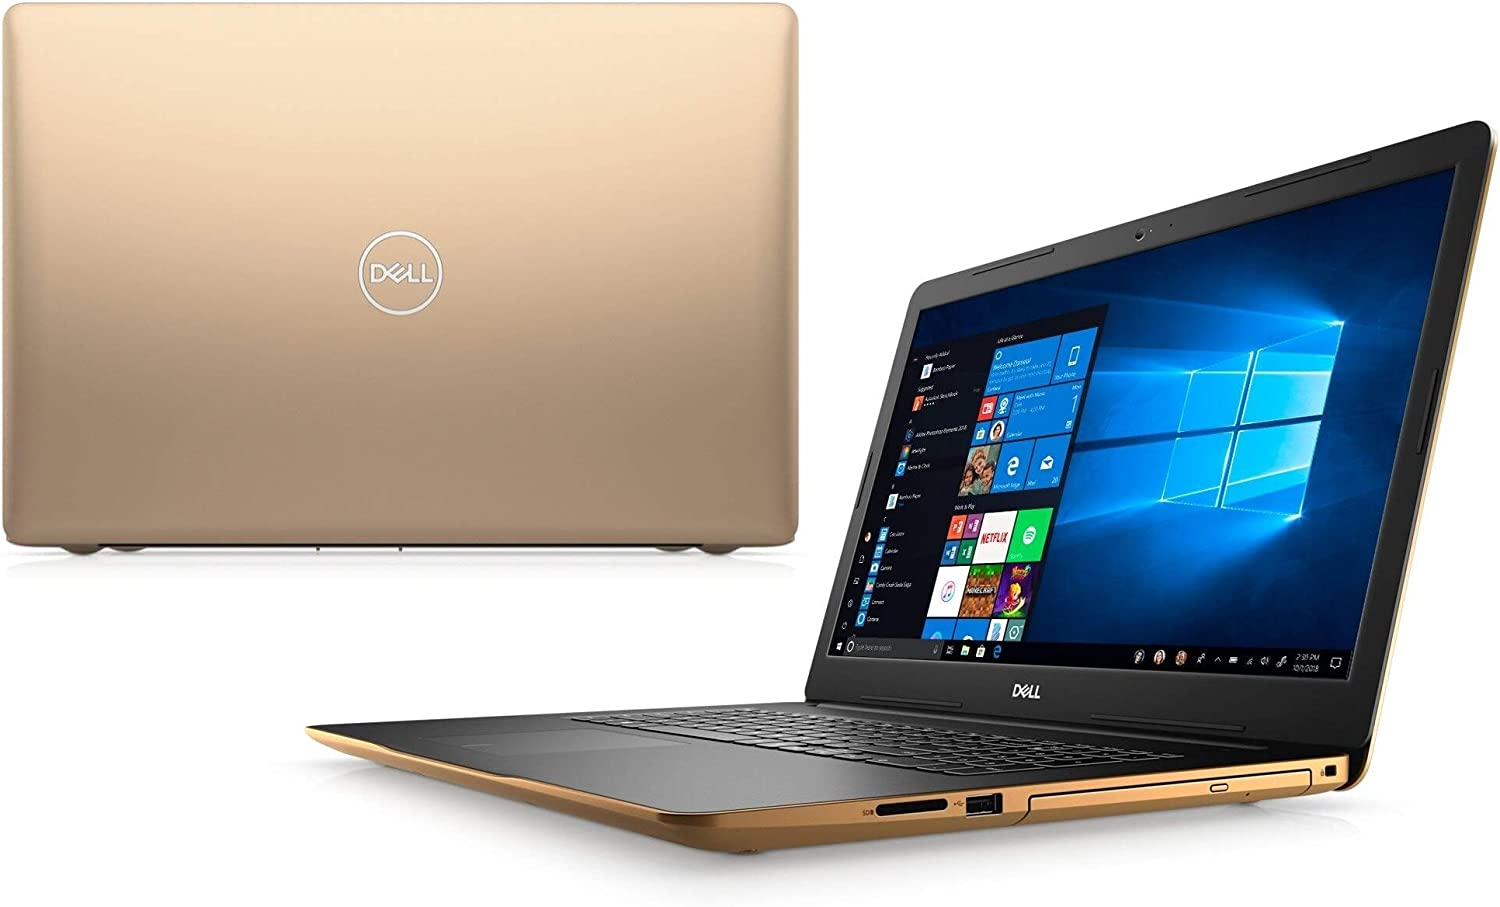 "2020 Newest Dell 17 3870 Premium Laptop PC: 17.3"" HD+ Touch Display, Latest Intel 2-Core Pentium Gold Processor, 8GB RAM, 512GB SSD, Bluetooth, Wi-Fi, HDMI, Backlit-KB, FP-Reader, Win10, June MP"